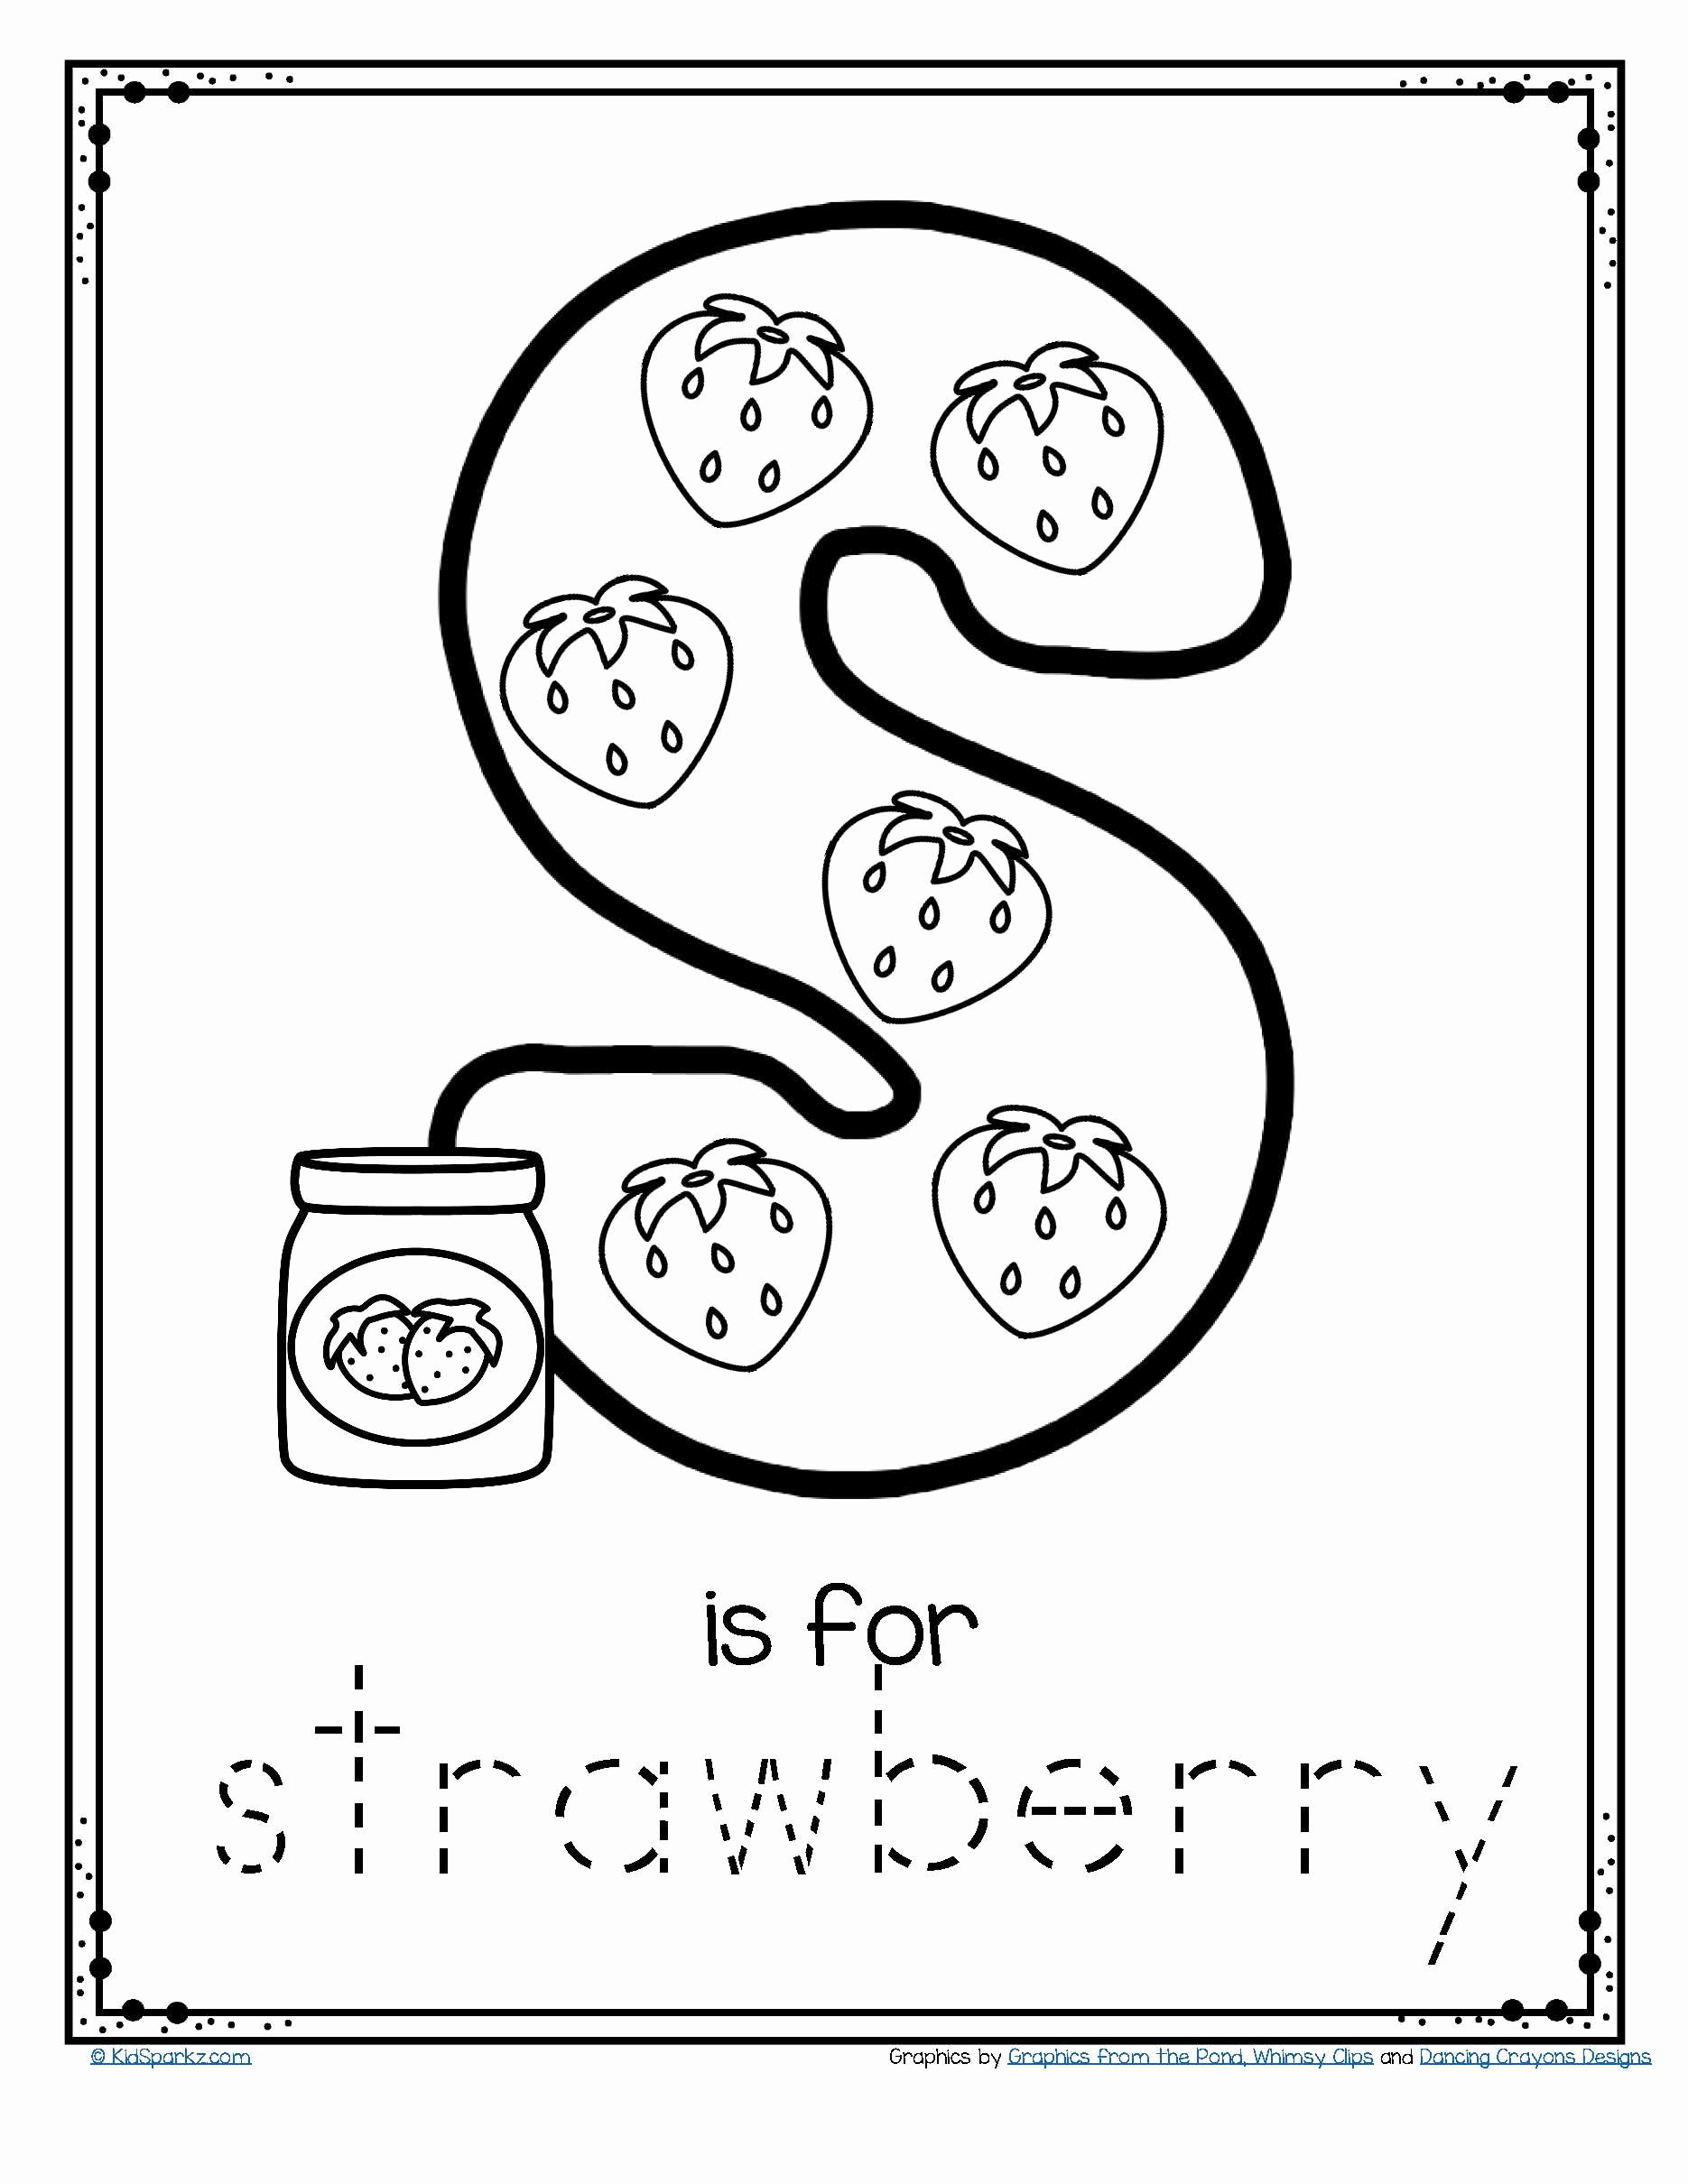 Printable Worksheets for Preschoolers Math top Worksheets Free is for Strawberry Alphabet Letter